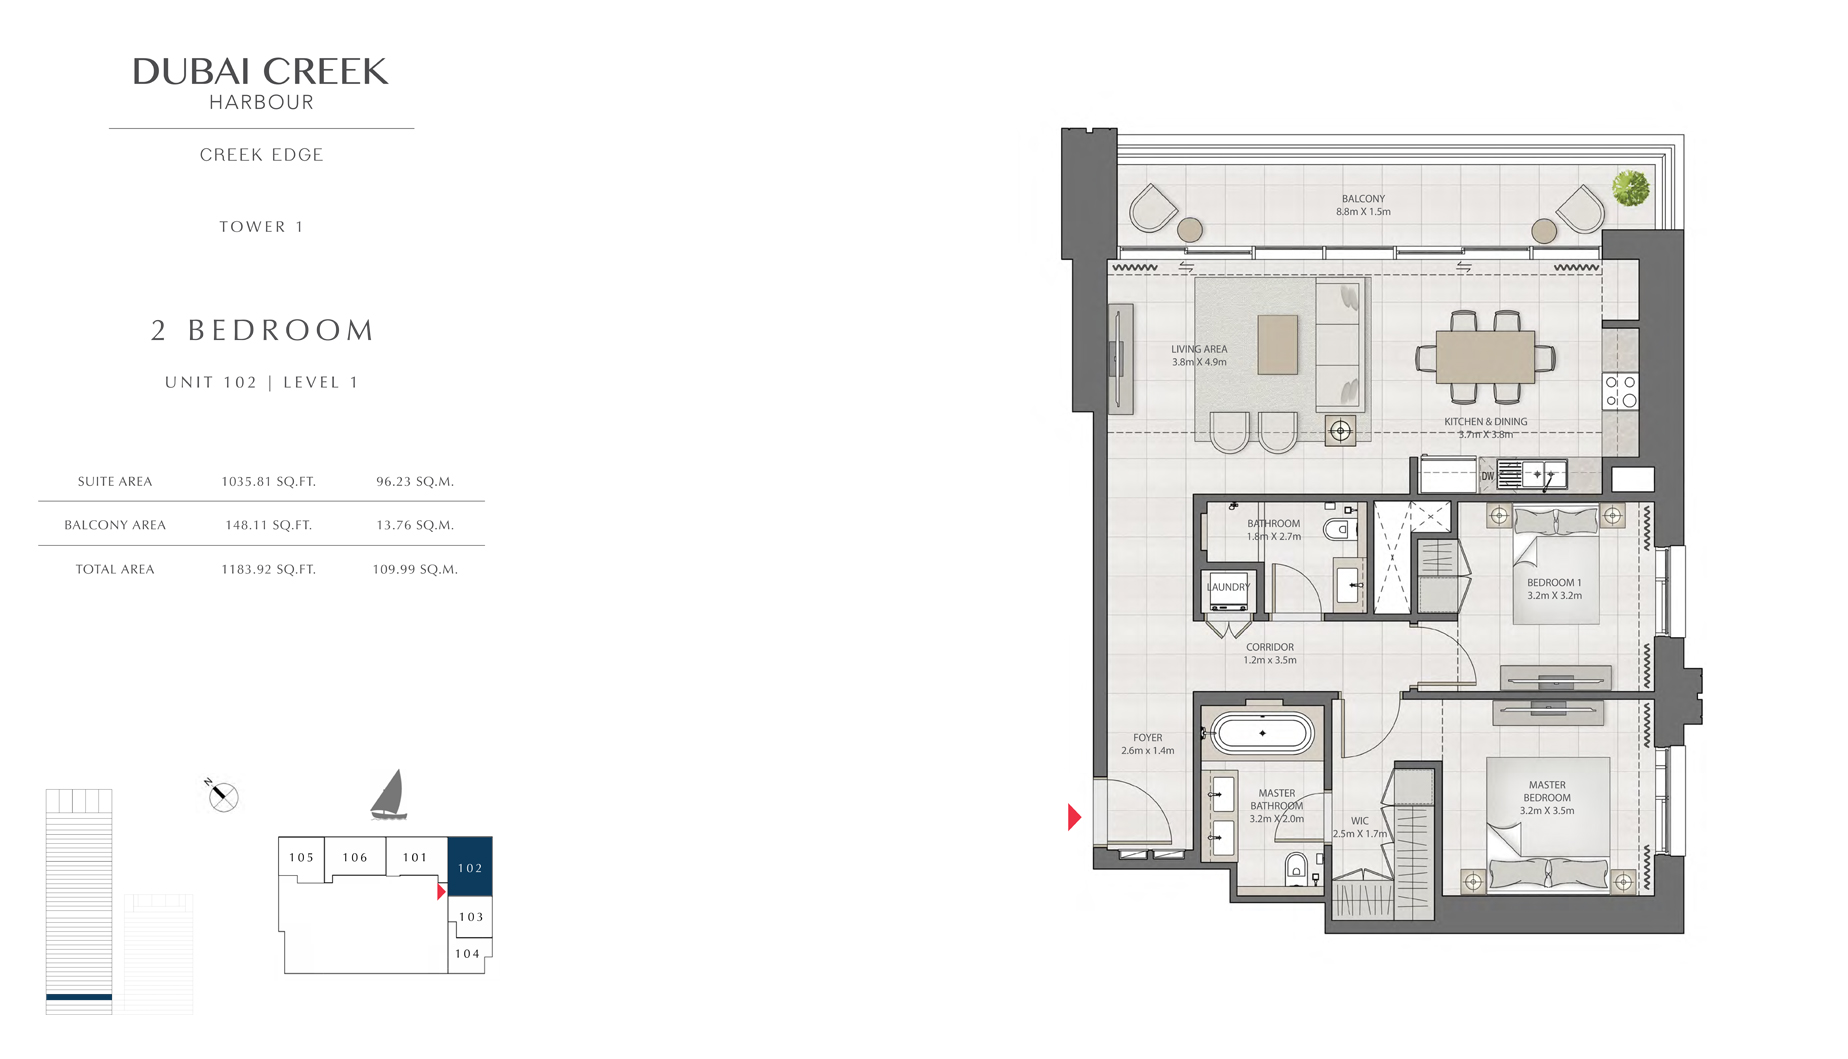 2 Bedroom Tower 1 Unit 102 Level 1 Size 1183 sq.ft